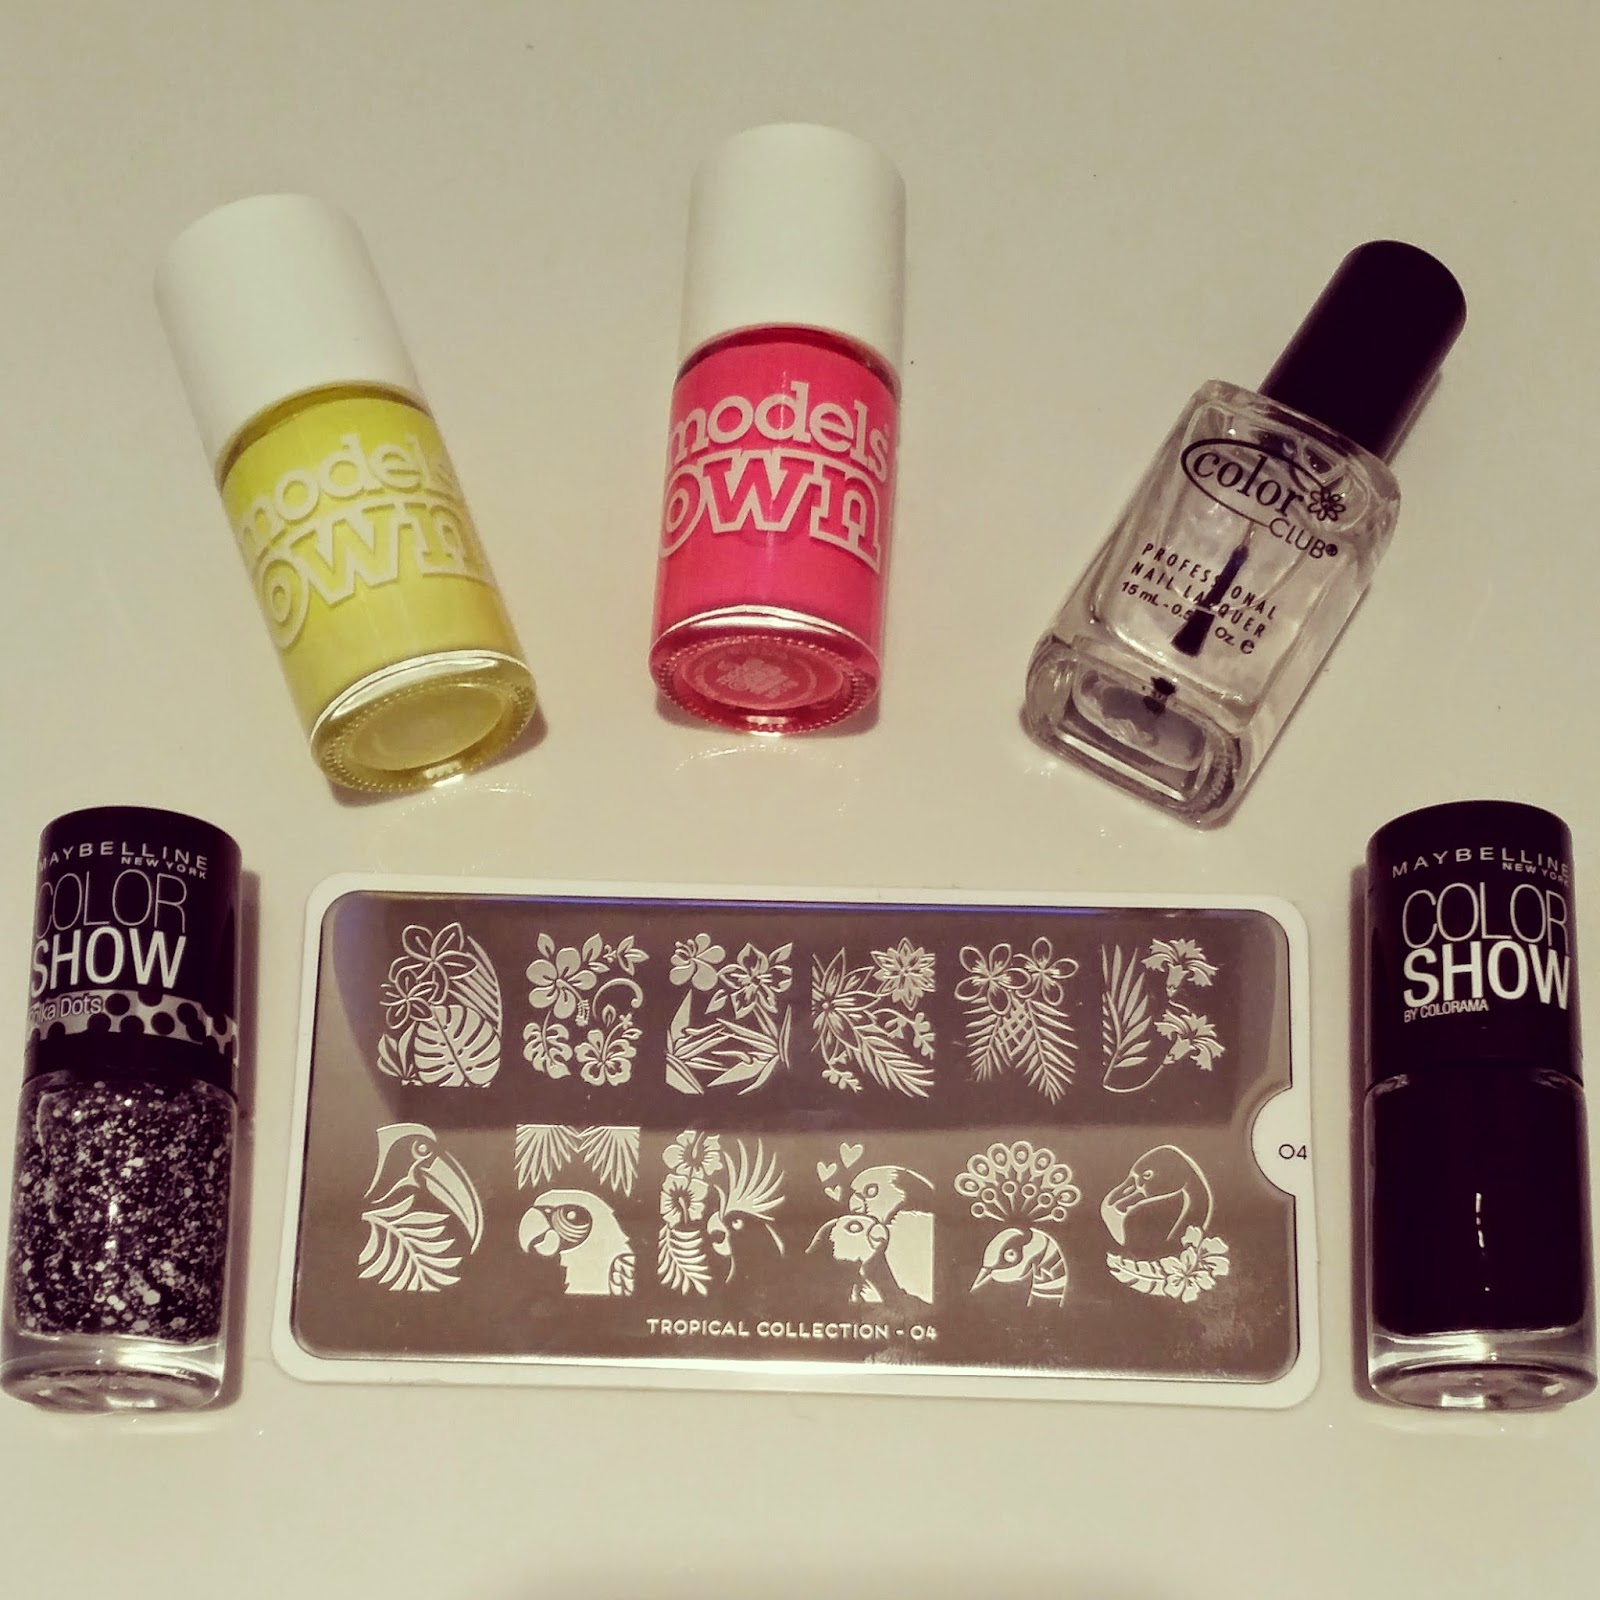 models-own-polish-for-tans-moyou-london-nail-art